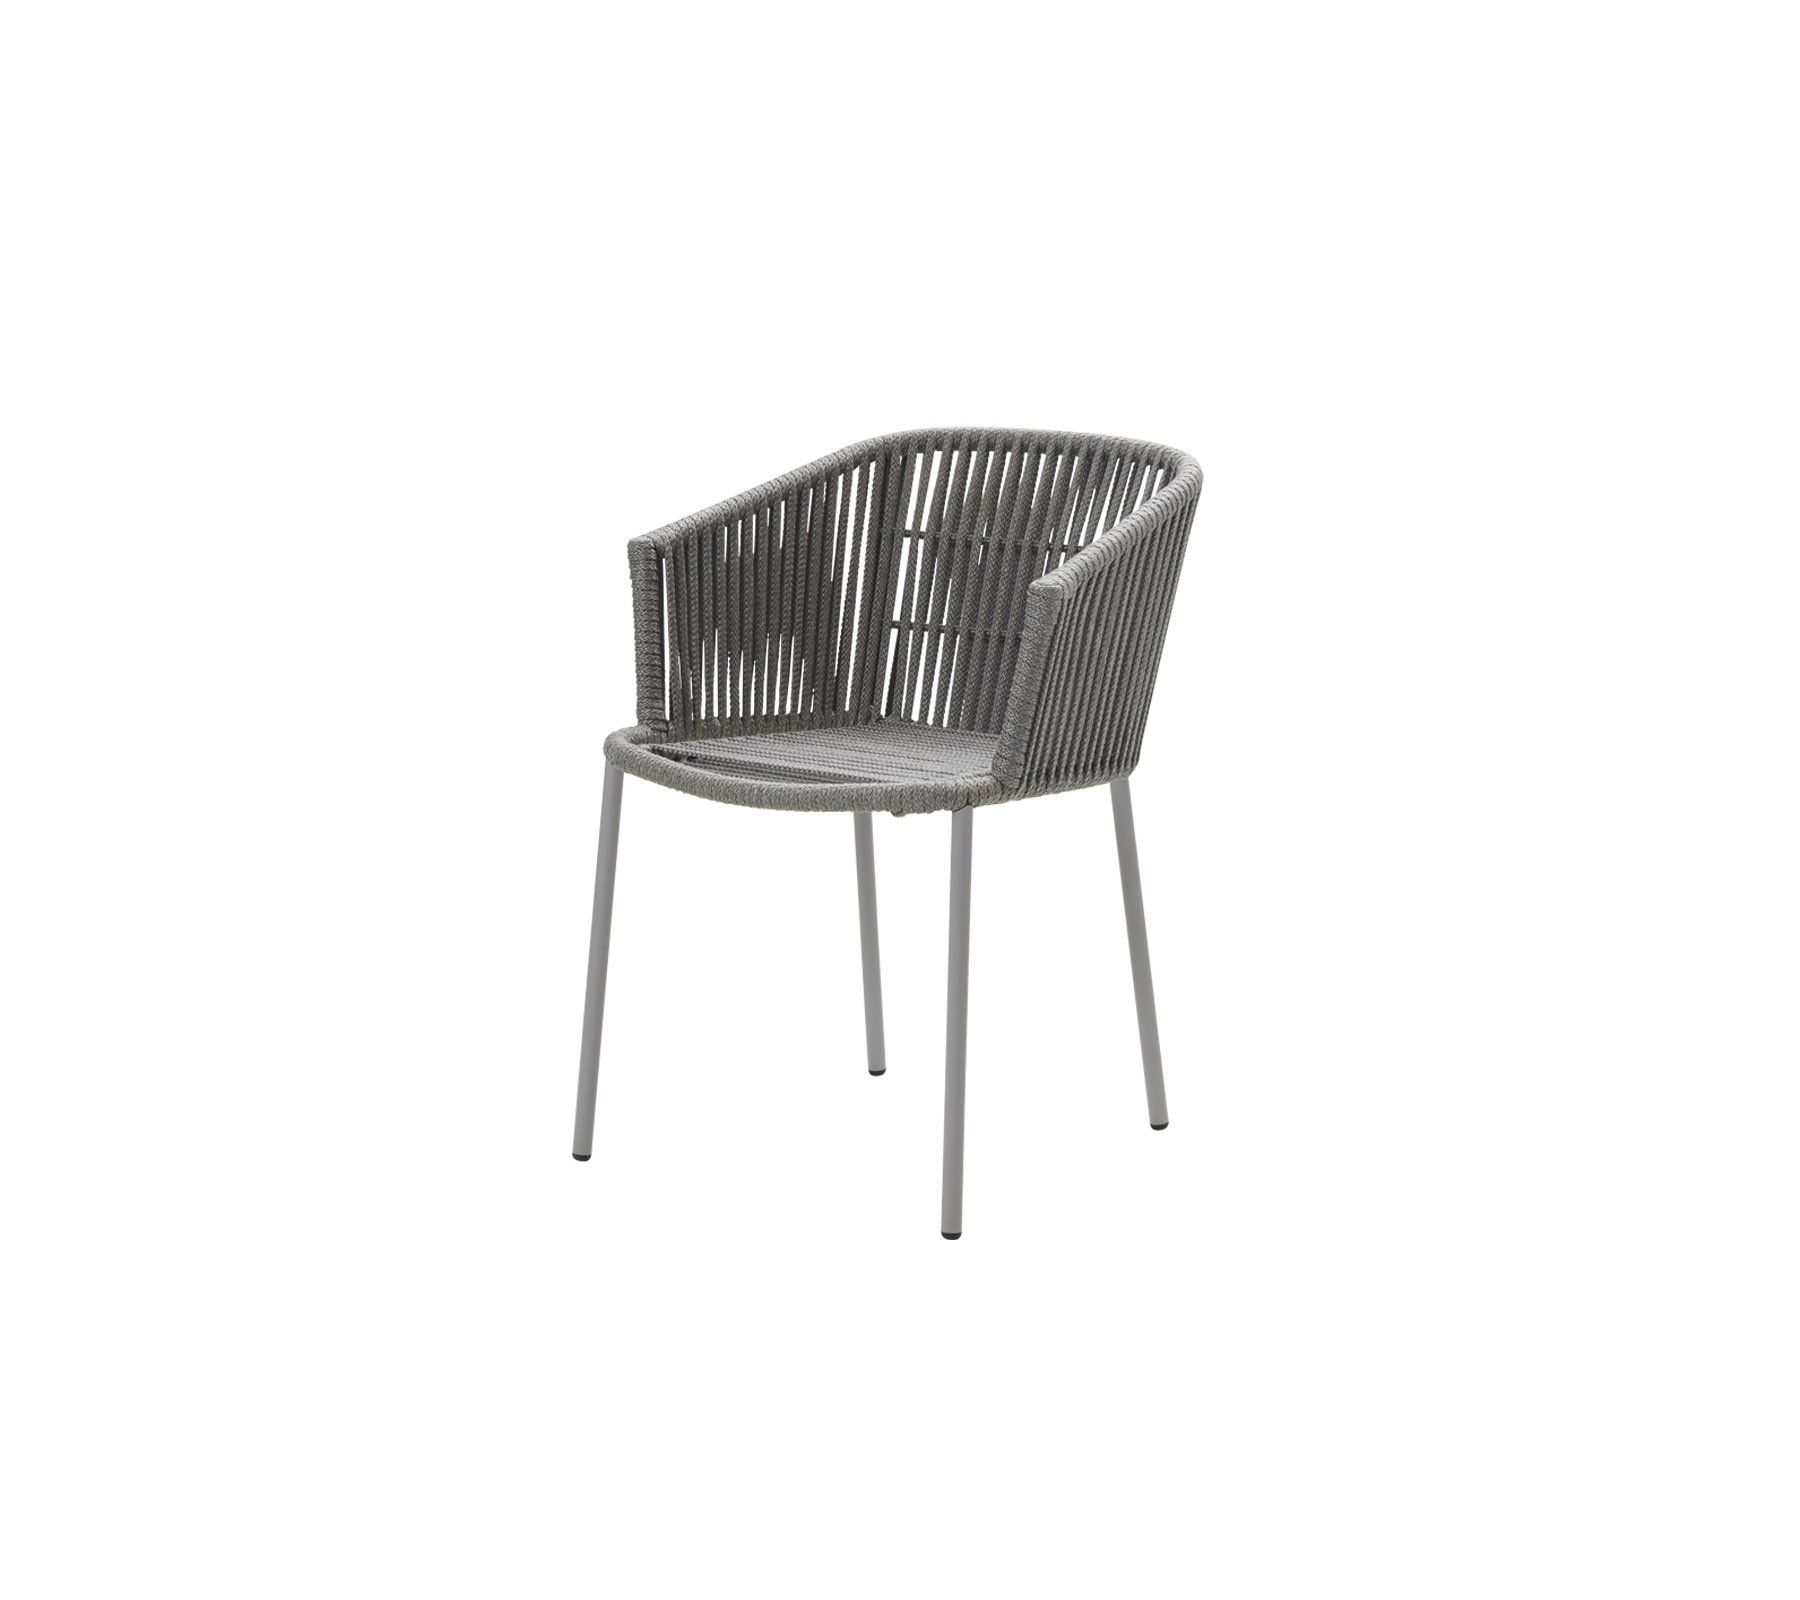 Cane Line Moments Chair Stackable By Two See Selection Cane Line Com Chair Furniture Armchair